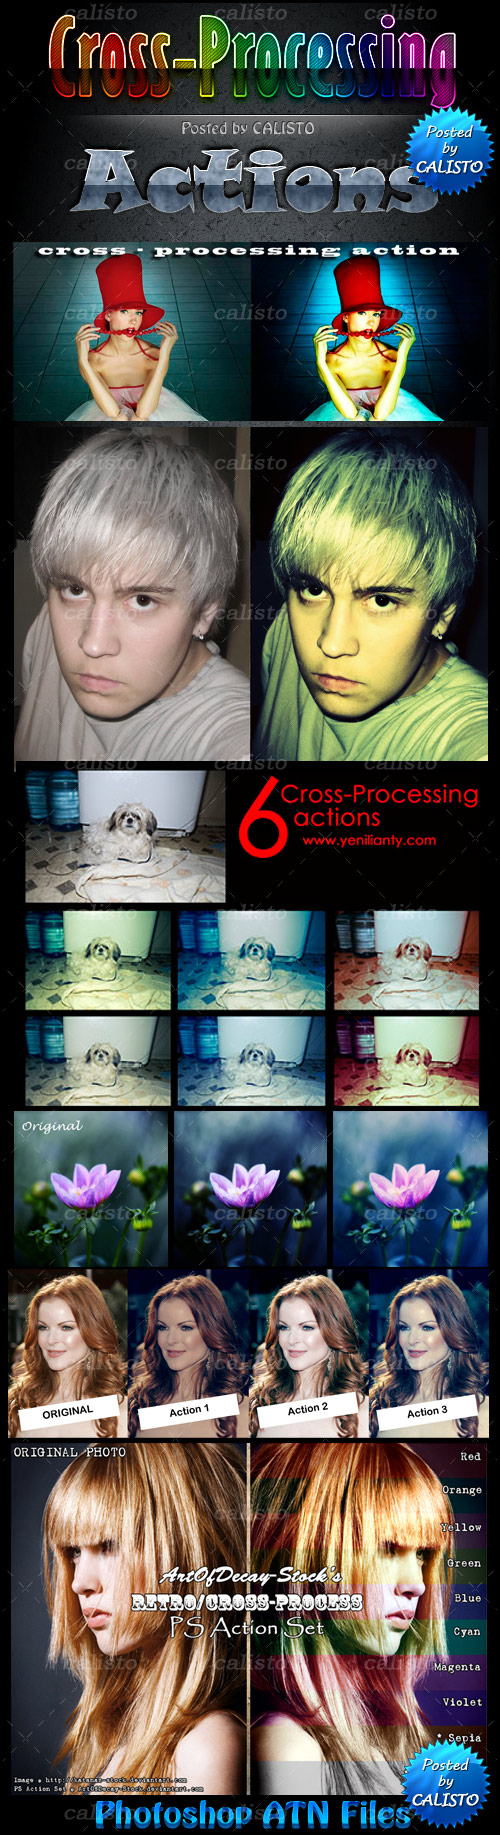 Cross-Processing Actions